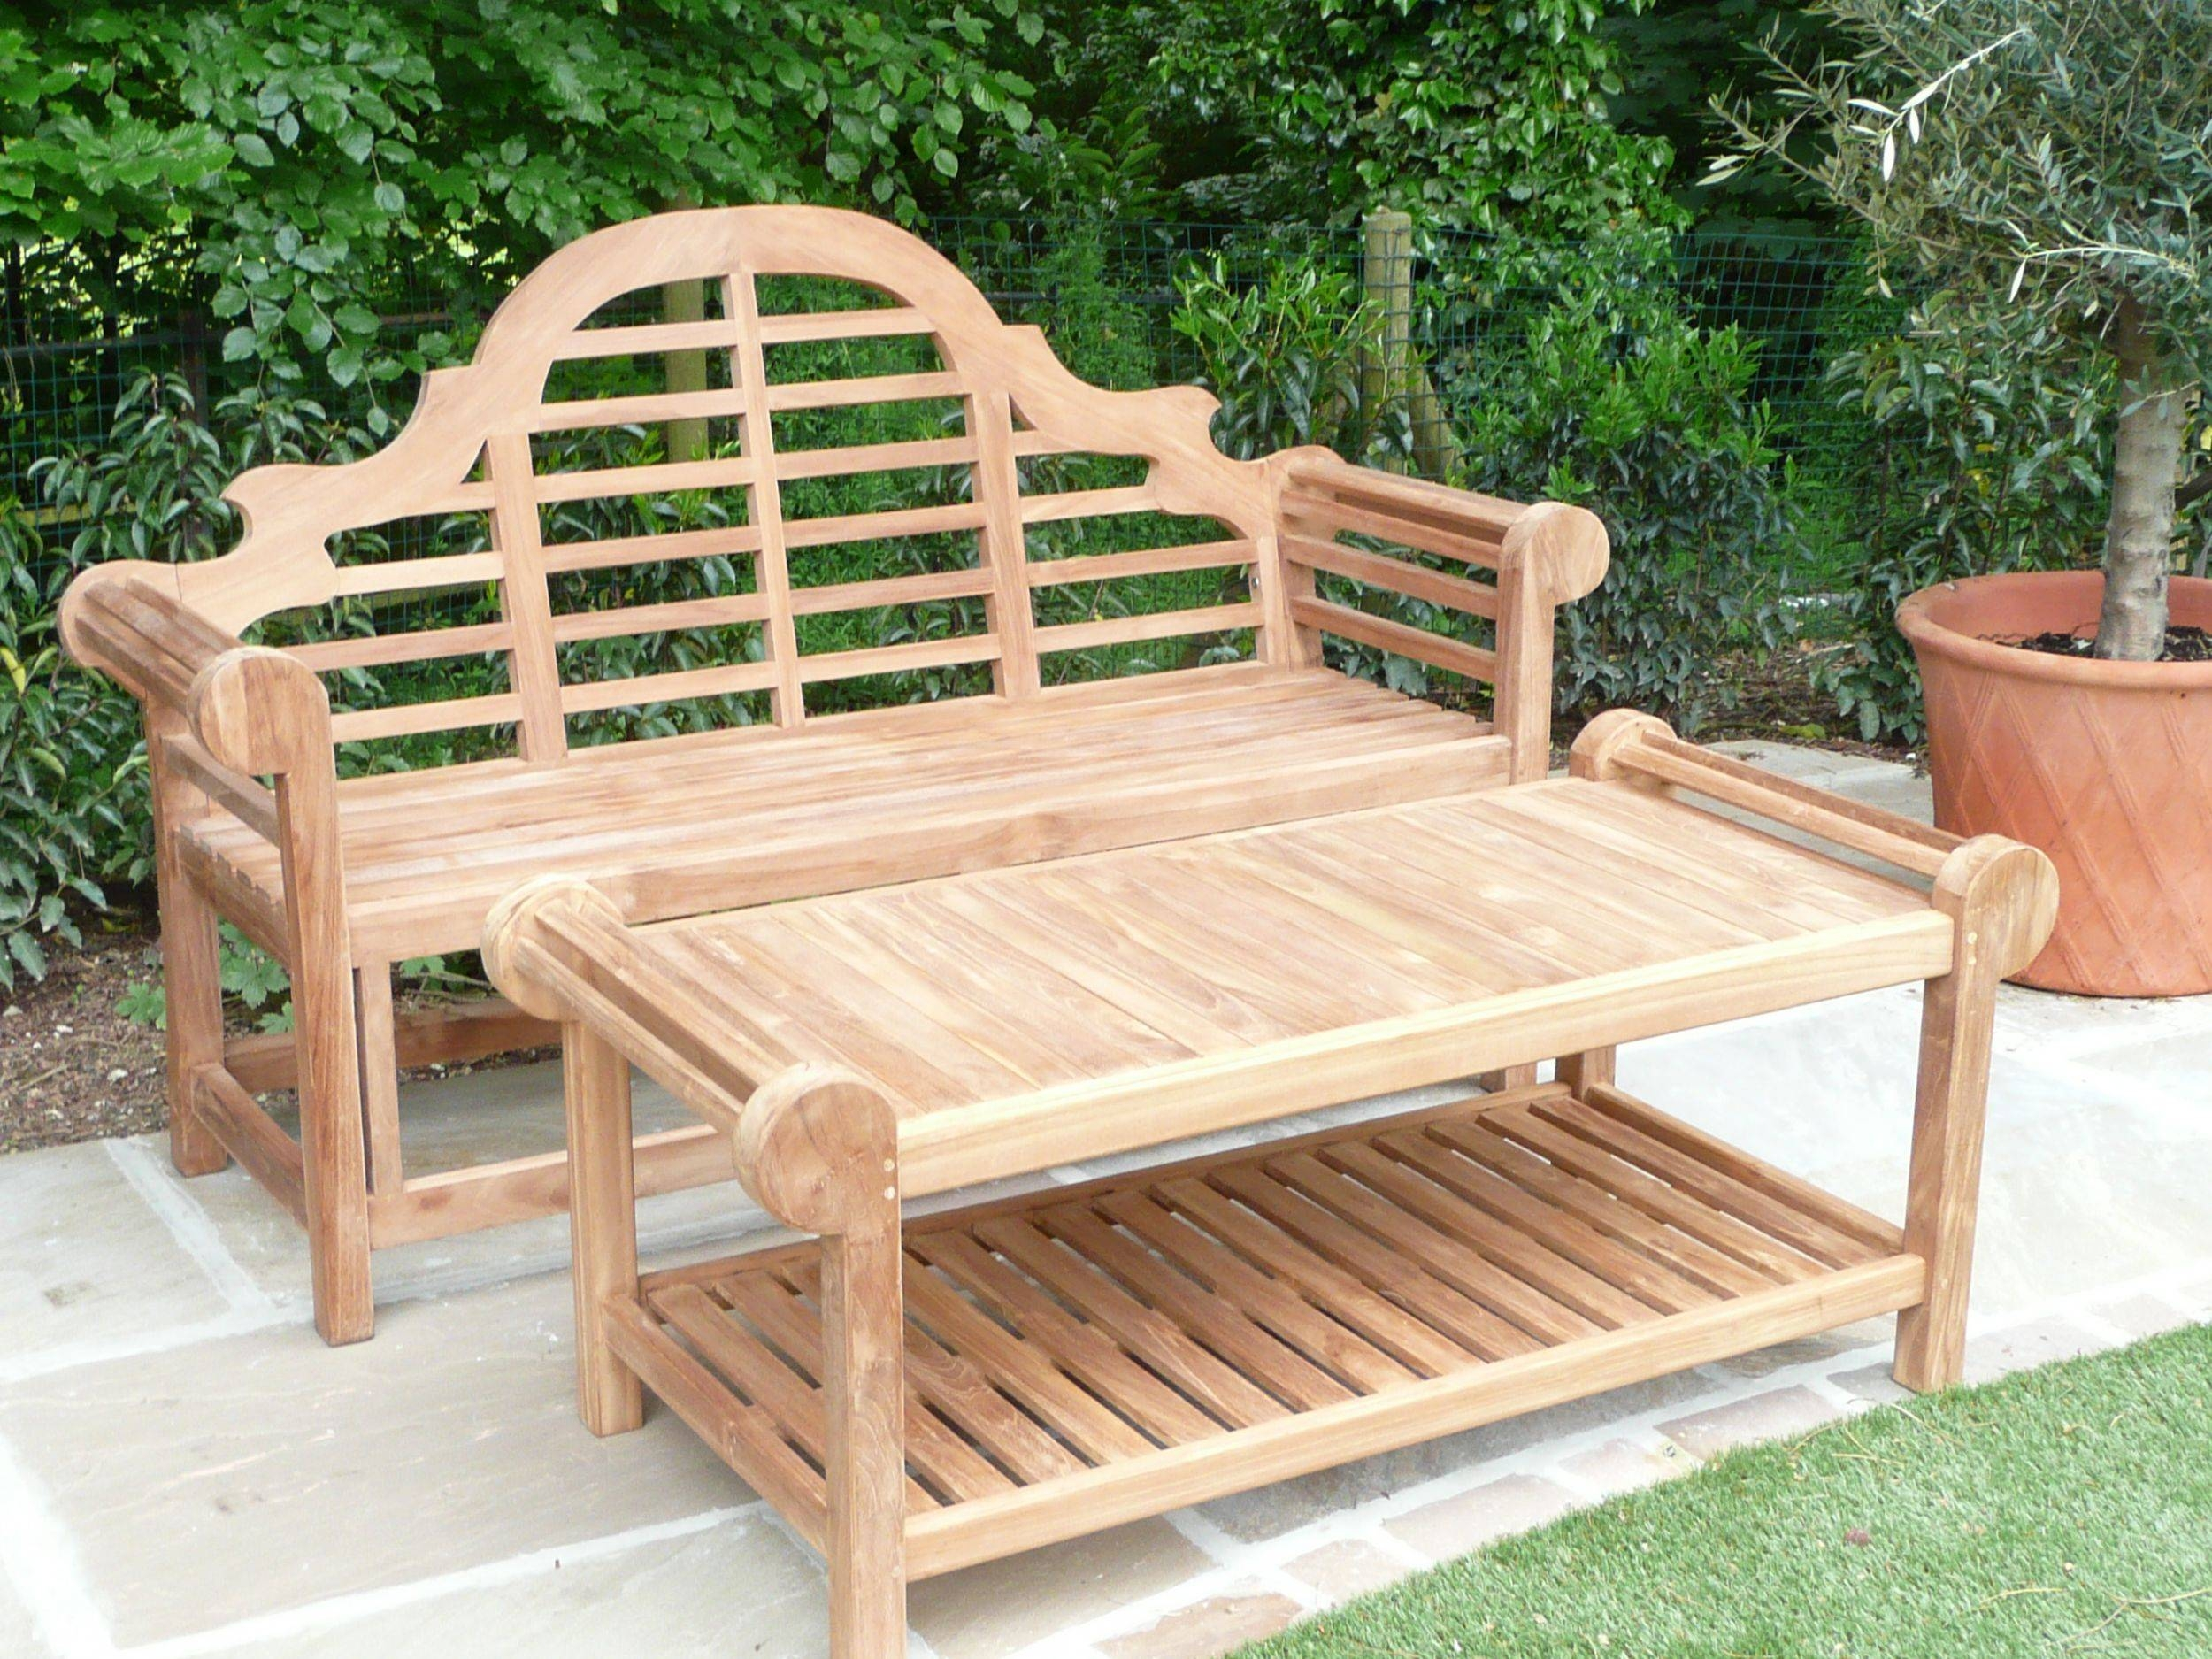 Lutyens Teak Bench & Coffee Table - Humber Imports Uk | Humber Imports regarding Wooden Garden Coffee Tables (Image 17 of 30)